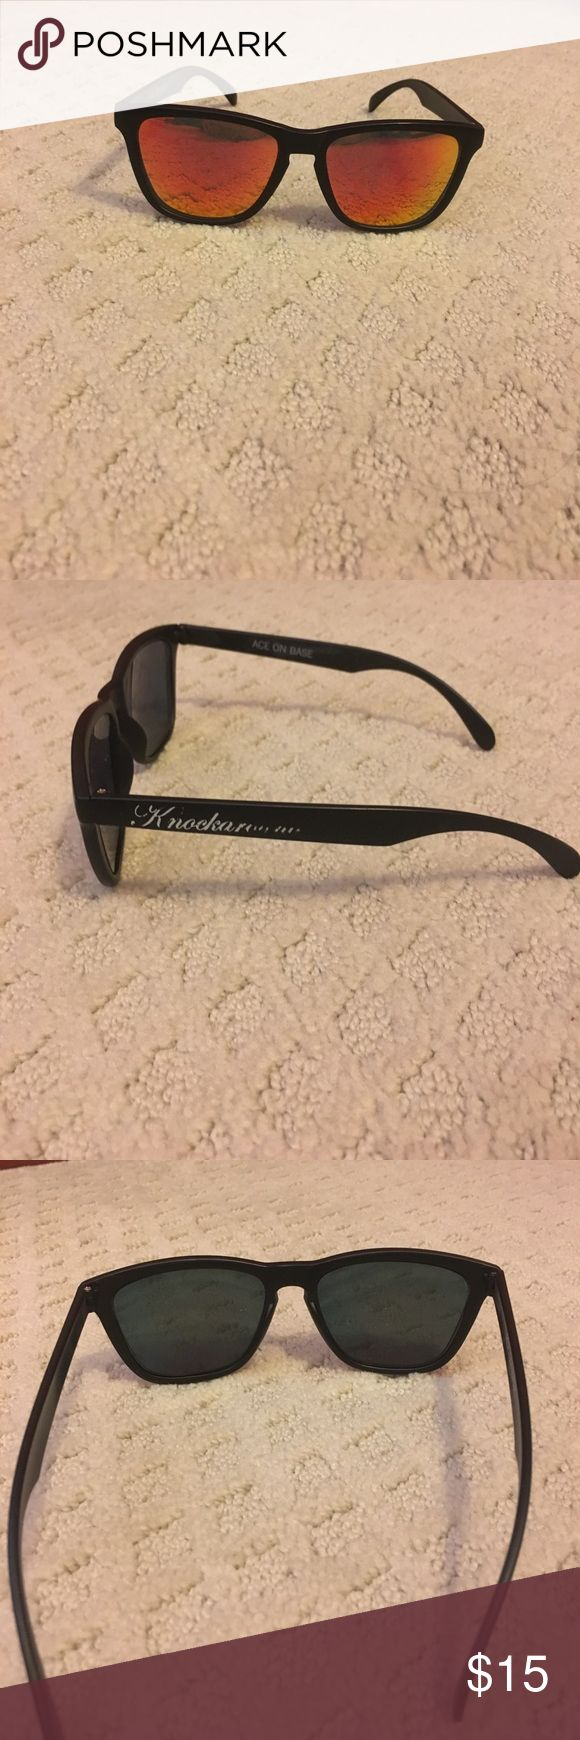 Knockaround sunglasses Knockaround sunglasses with red/orange lenses. Worn once! knockaround Accessories Sunglasses